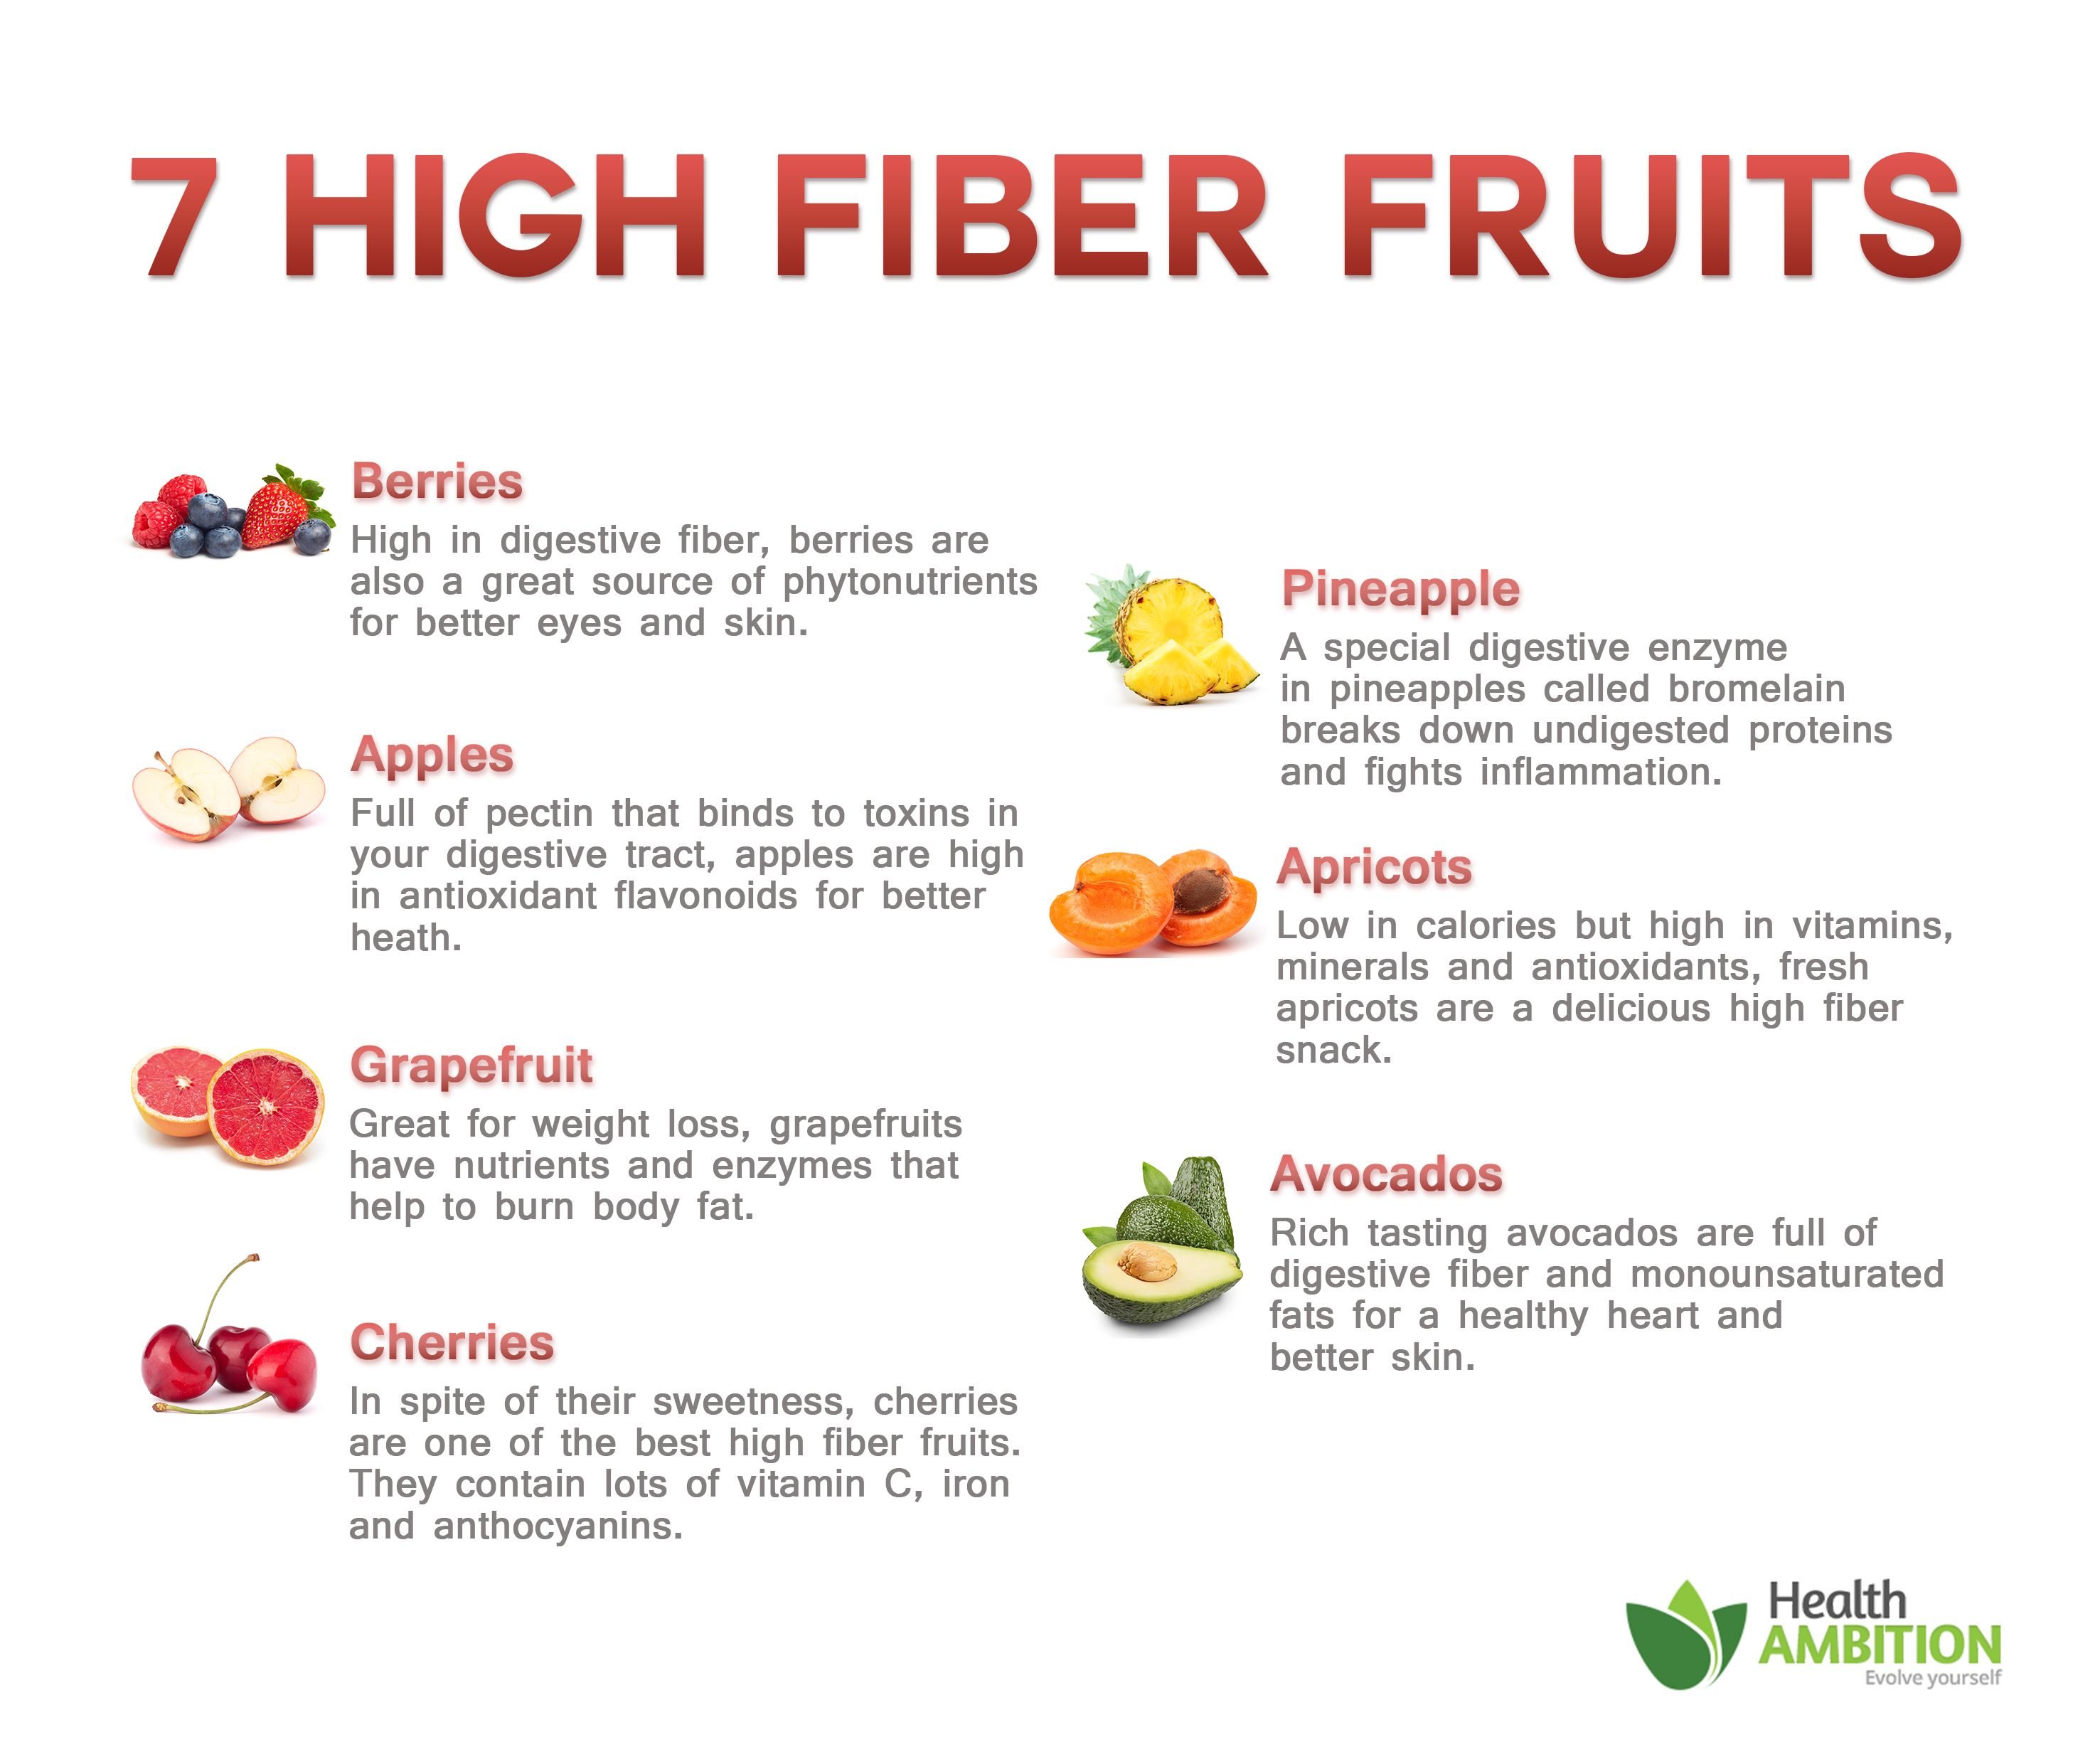 7 High Fiber Fruits for Breakfast and Healthy Snacks in